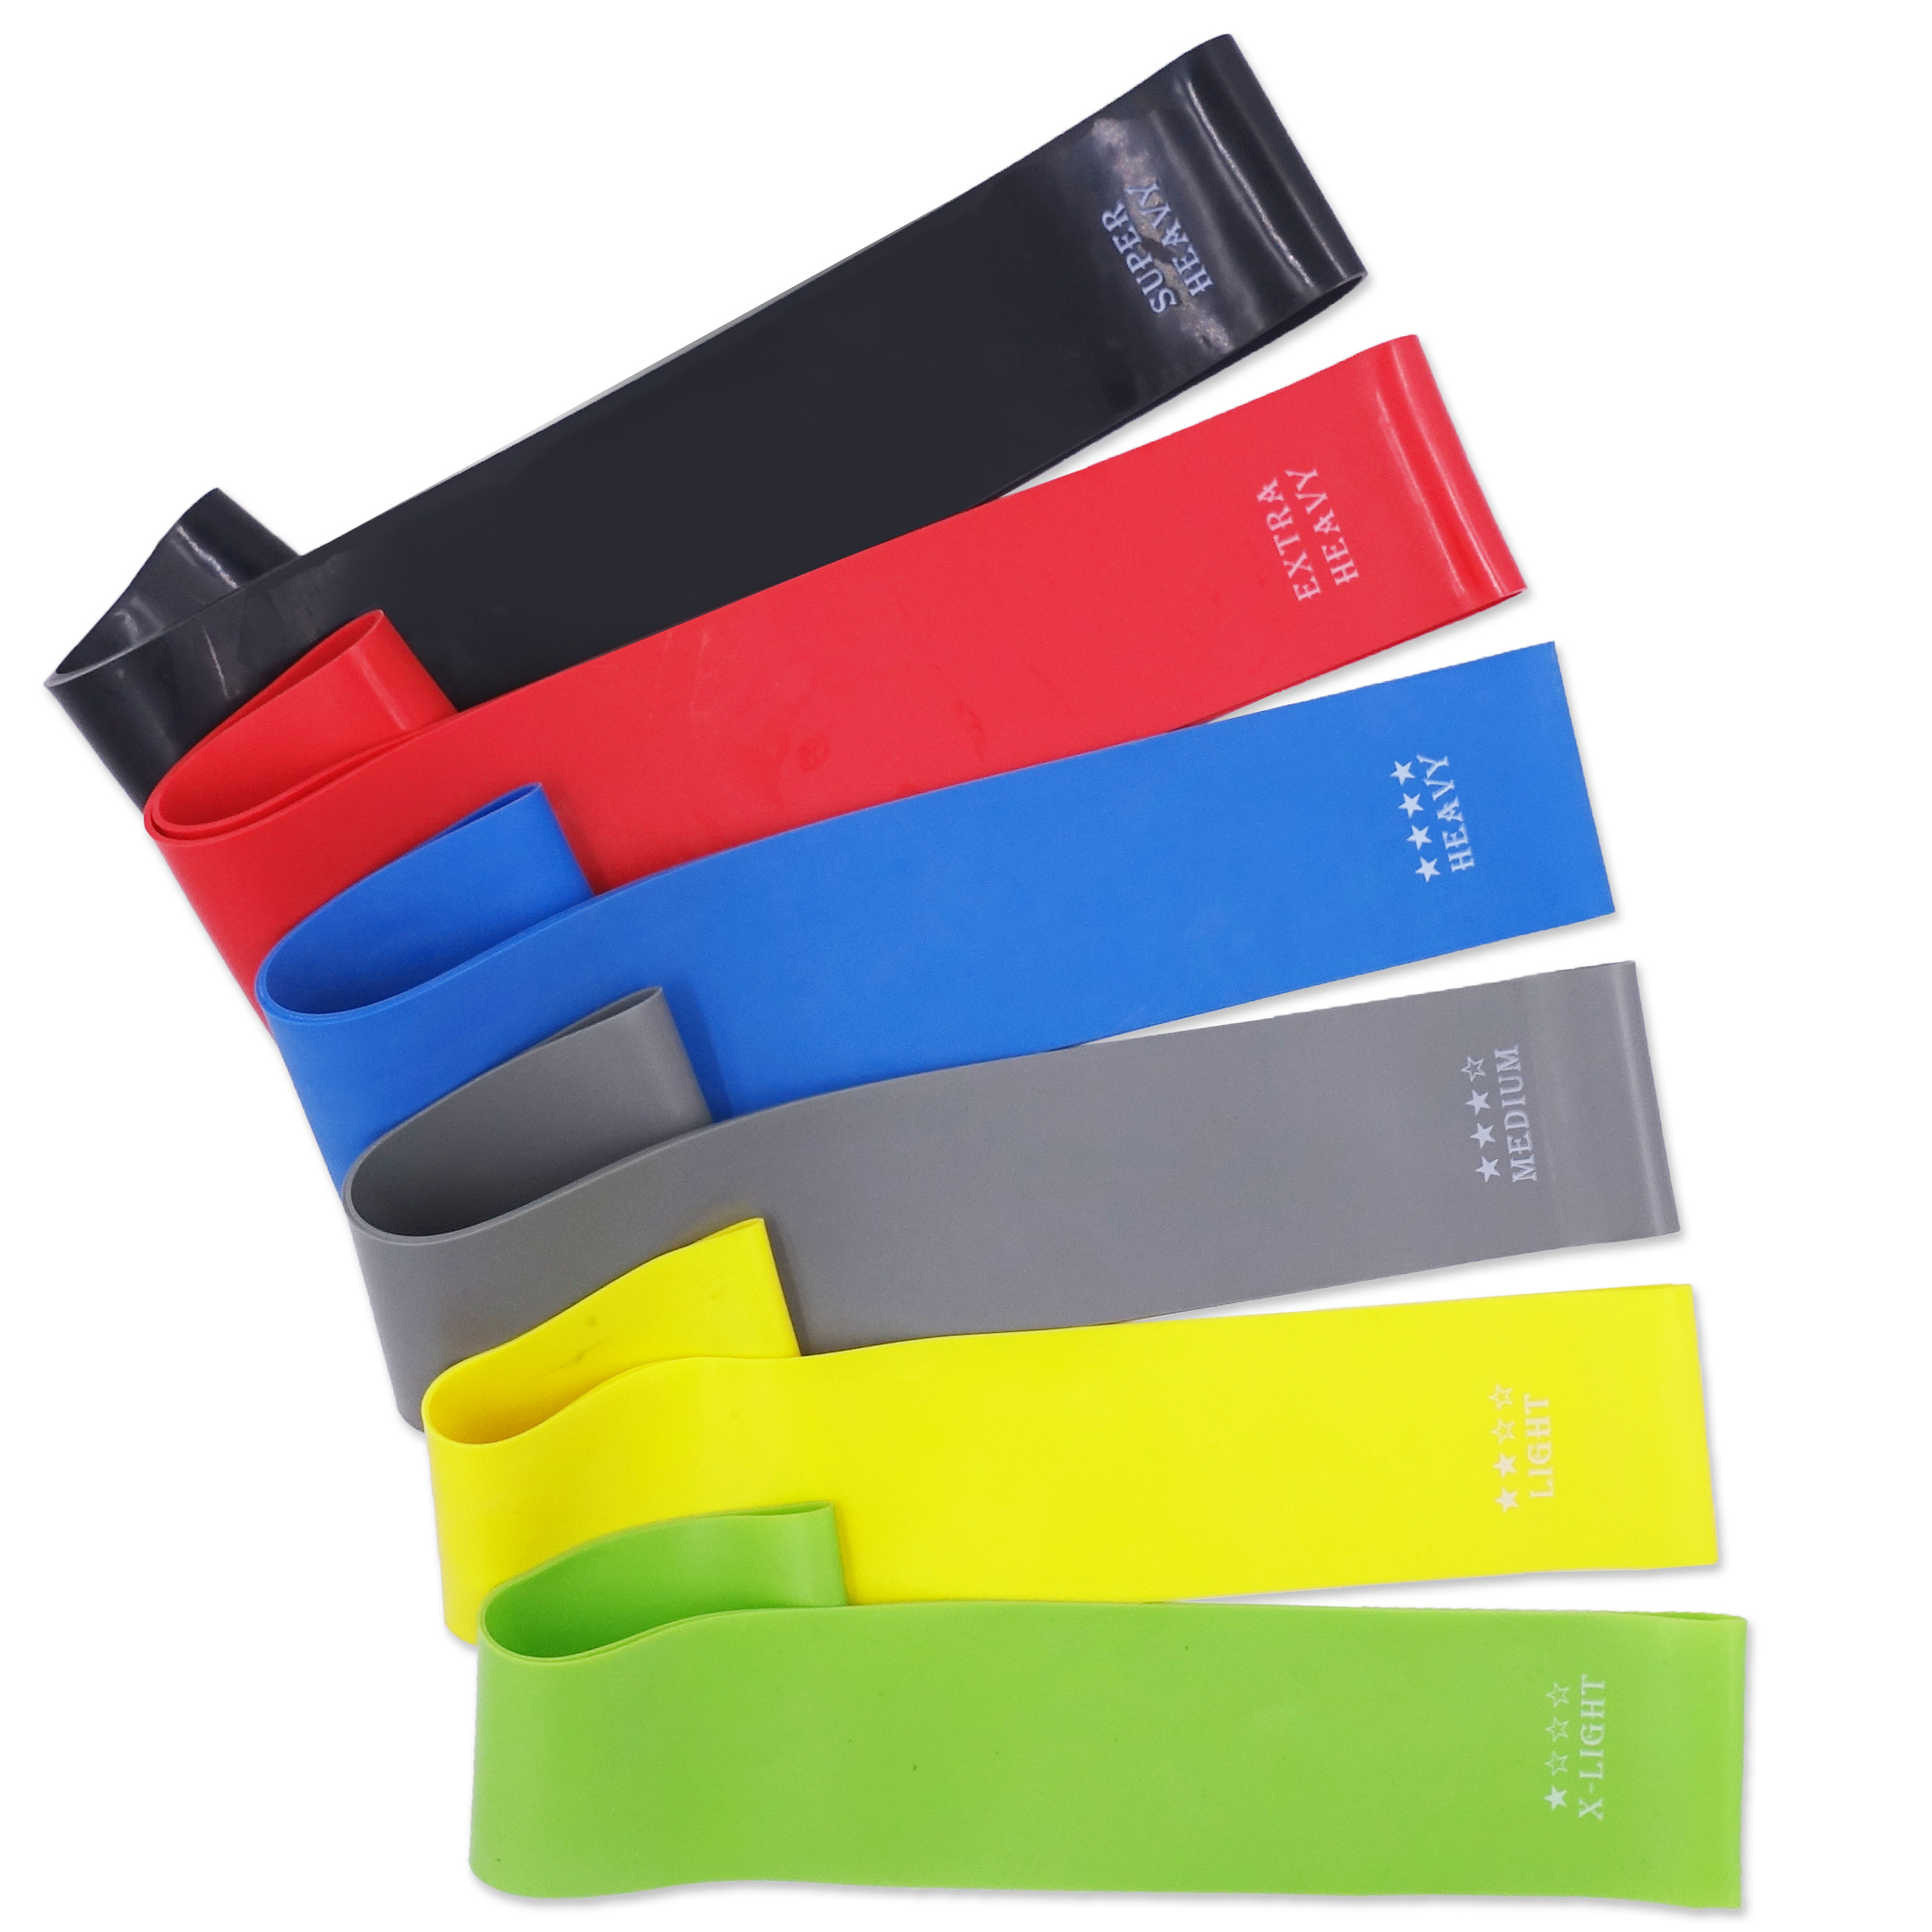 12-inch Yoga Resistance Bands 1.4mm-0.45mm Elastic Bands For Fitness Workout Crossfit Stretching Gym Strength Training Equipment